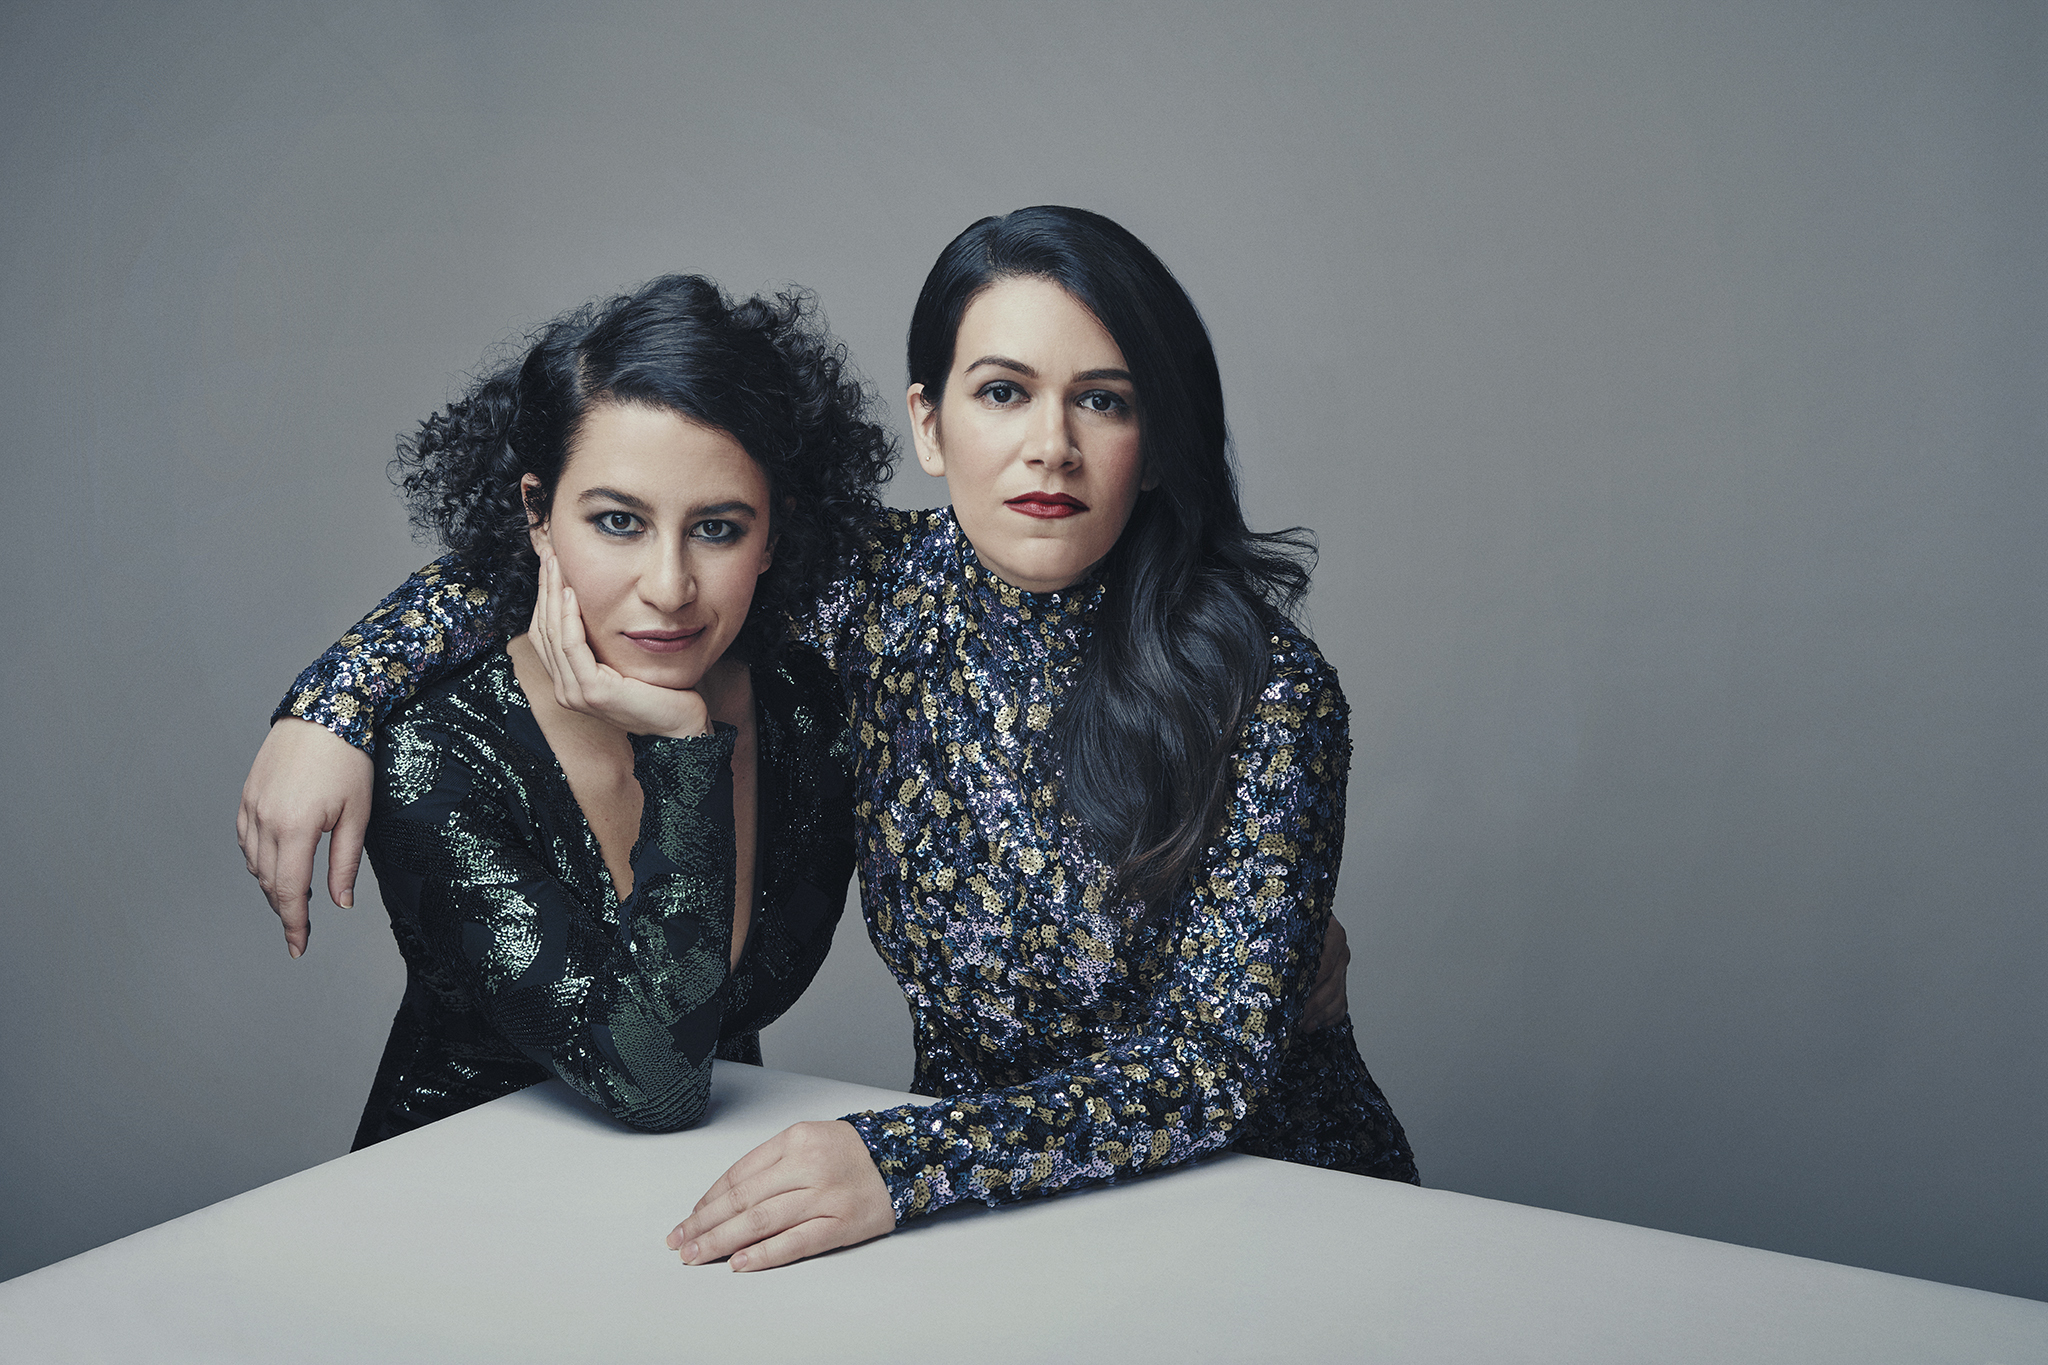 Broad City sits down with us to talk about working 24/7, Hillary and why slutty is good